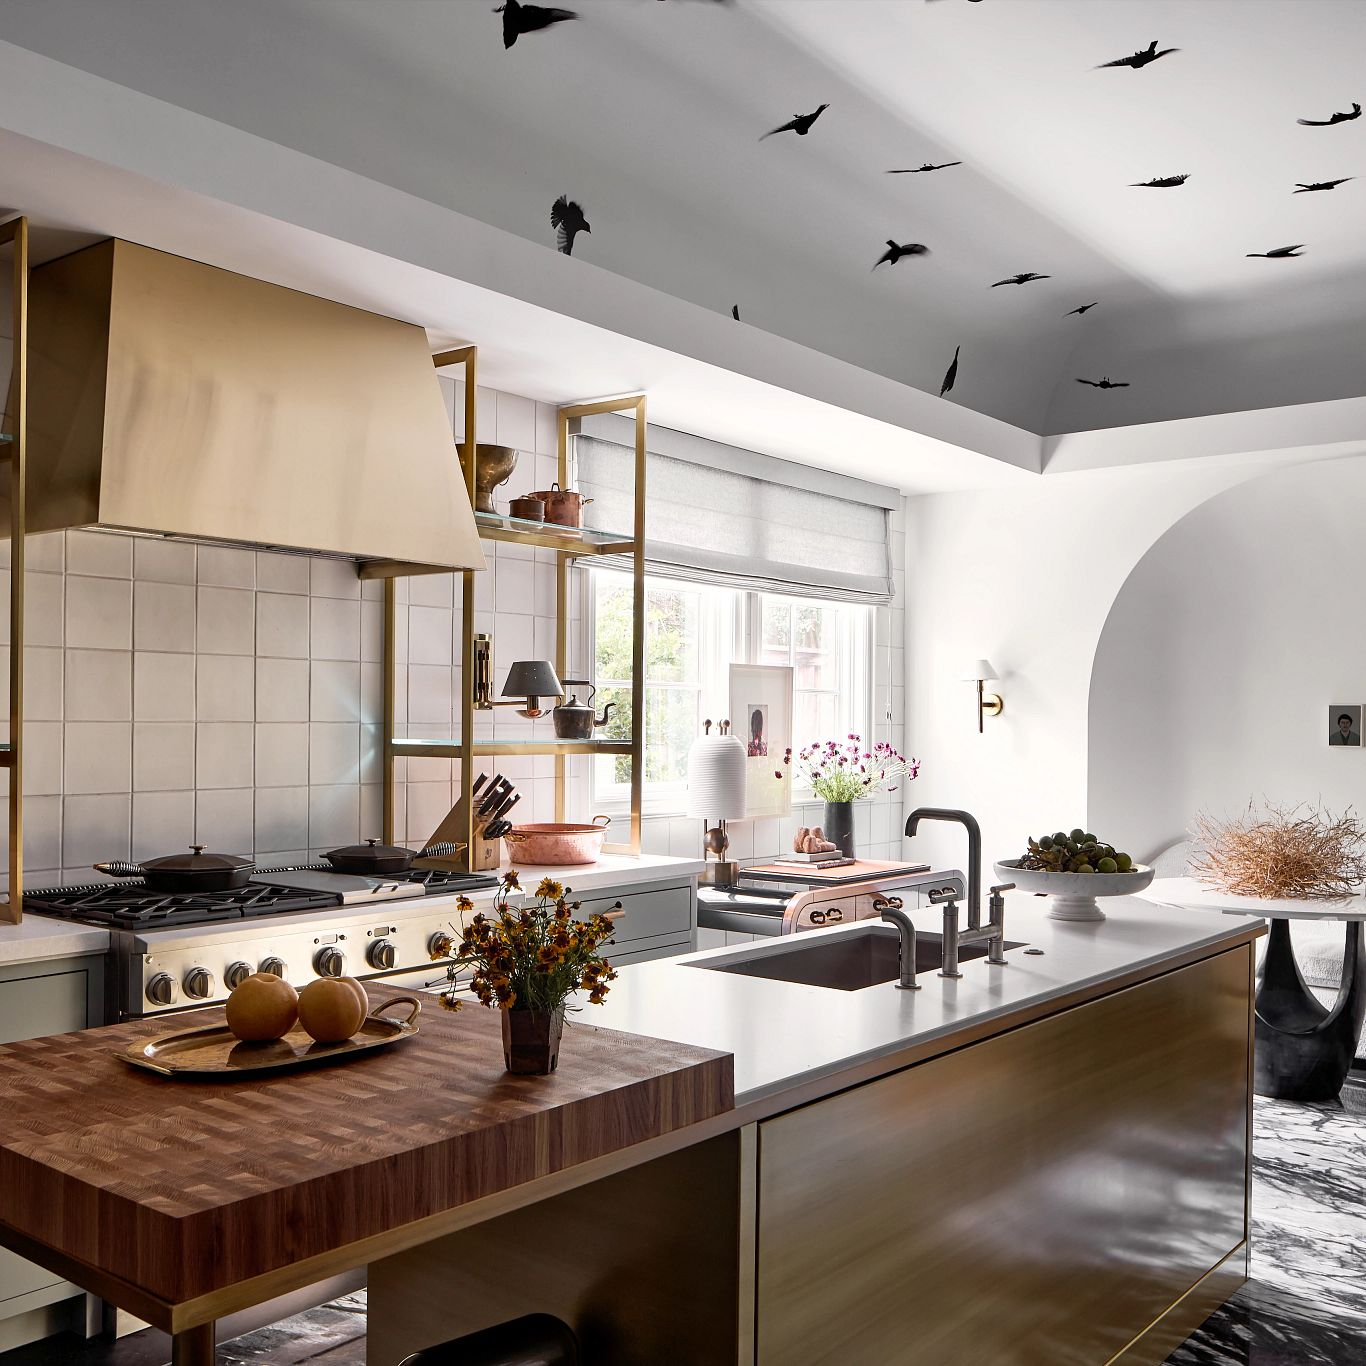 A picture containing indoor, ceiling, wall, kitchen  Description automatically generated